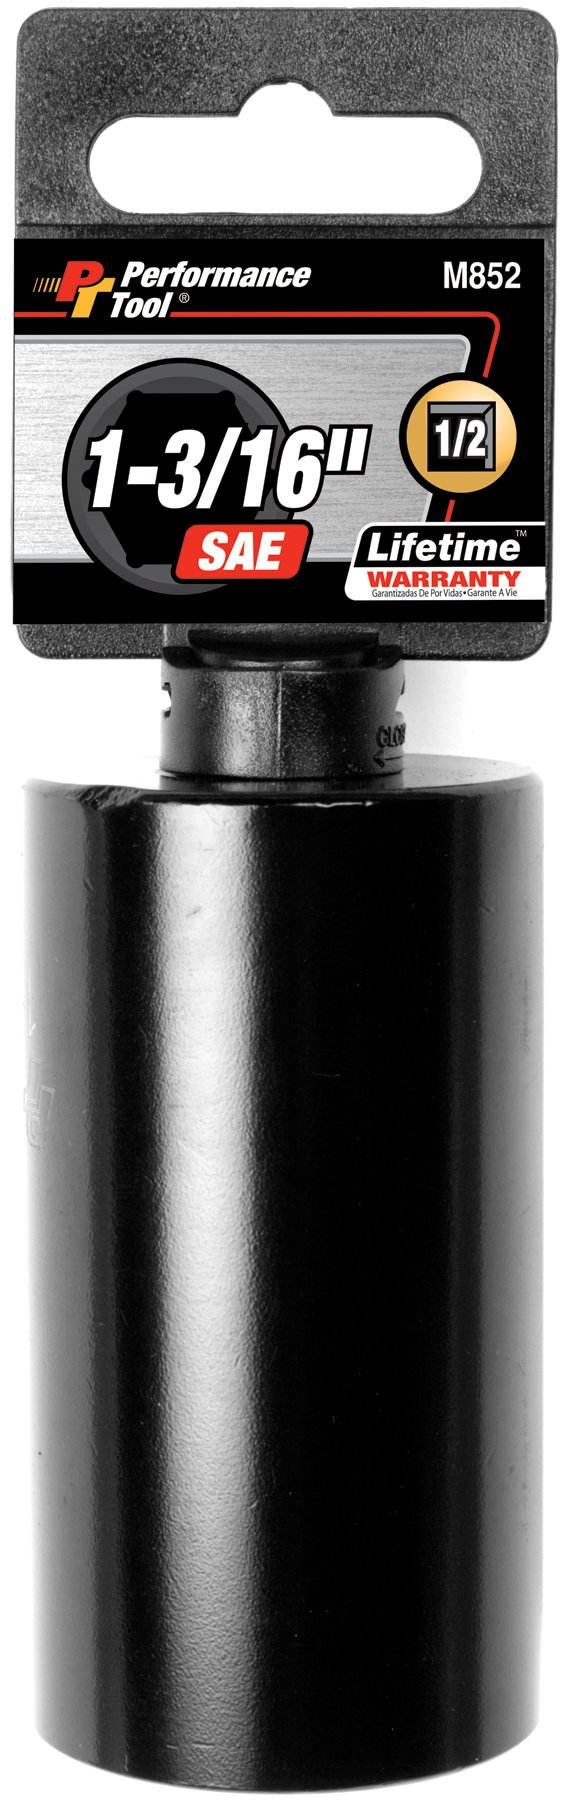 Performance Tool M852 1/2'' Dr. 6-Point Impact Socket, 1-3/16''